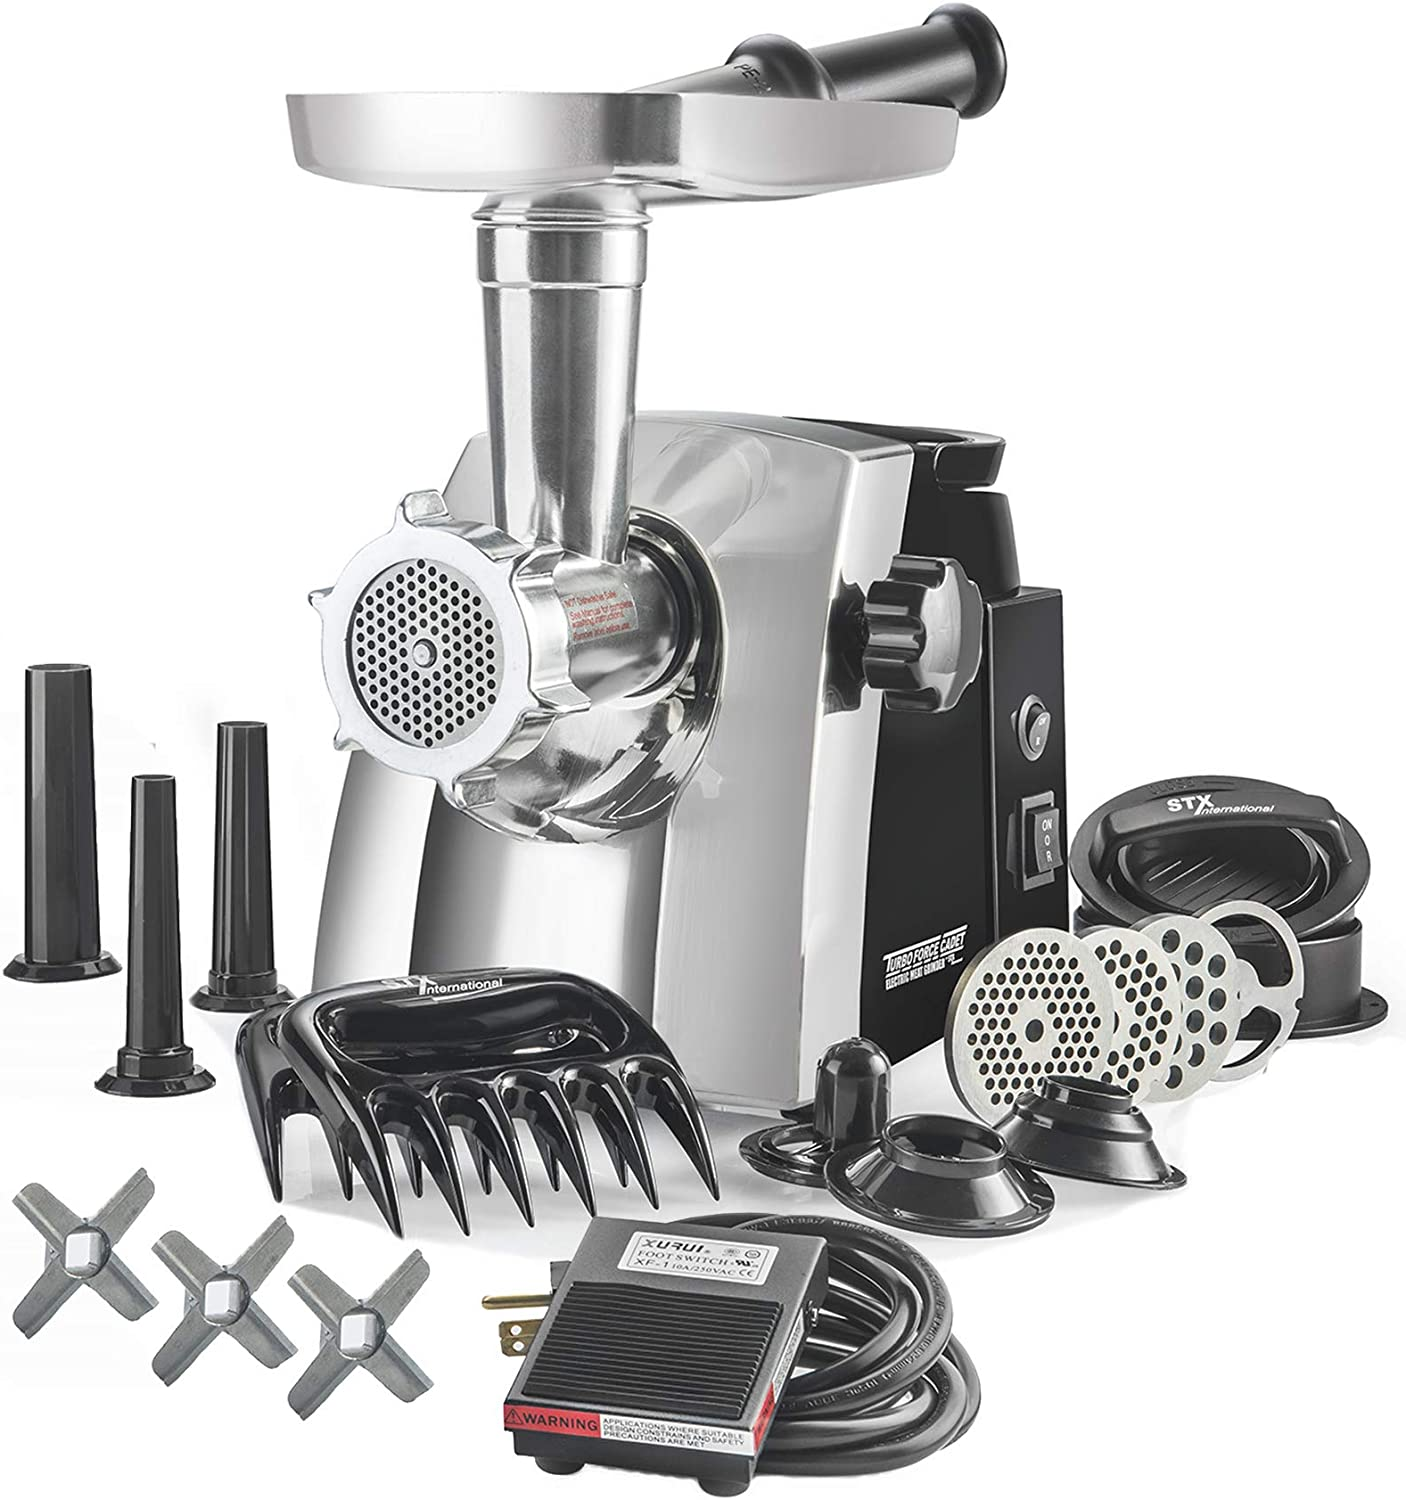 STX Turboforce Cadet – Platinum Edition w Foot Pedal – Electric Meat Grinder Sausage Stuffer – The Compact Titan of Grinders with AVI Feed Technology, High Volume Feed Tray, 120 Lbs Hour Plus More